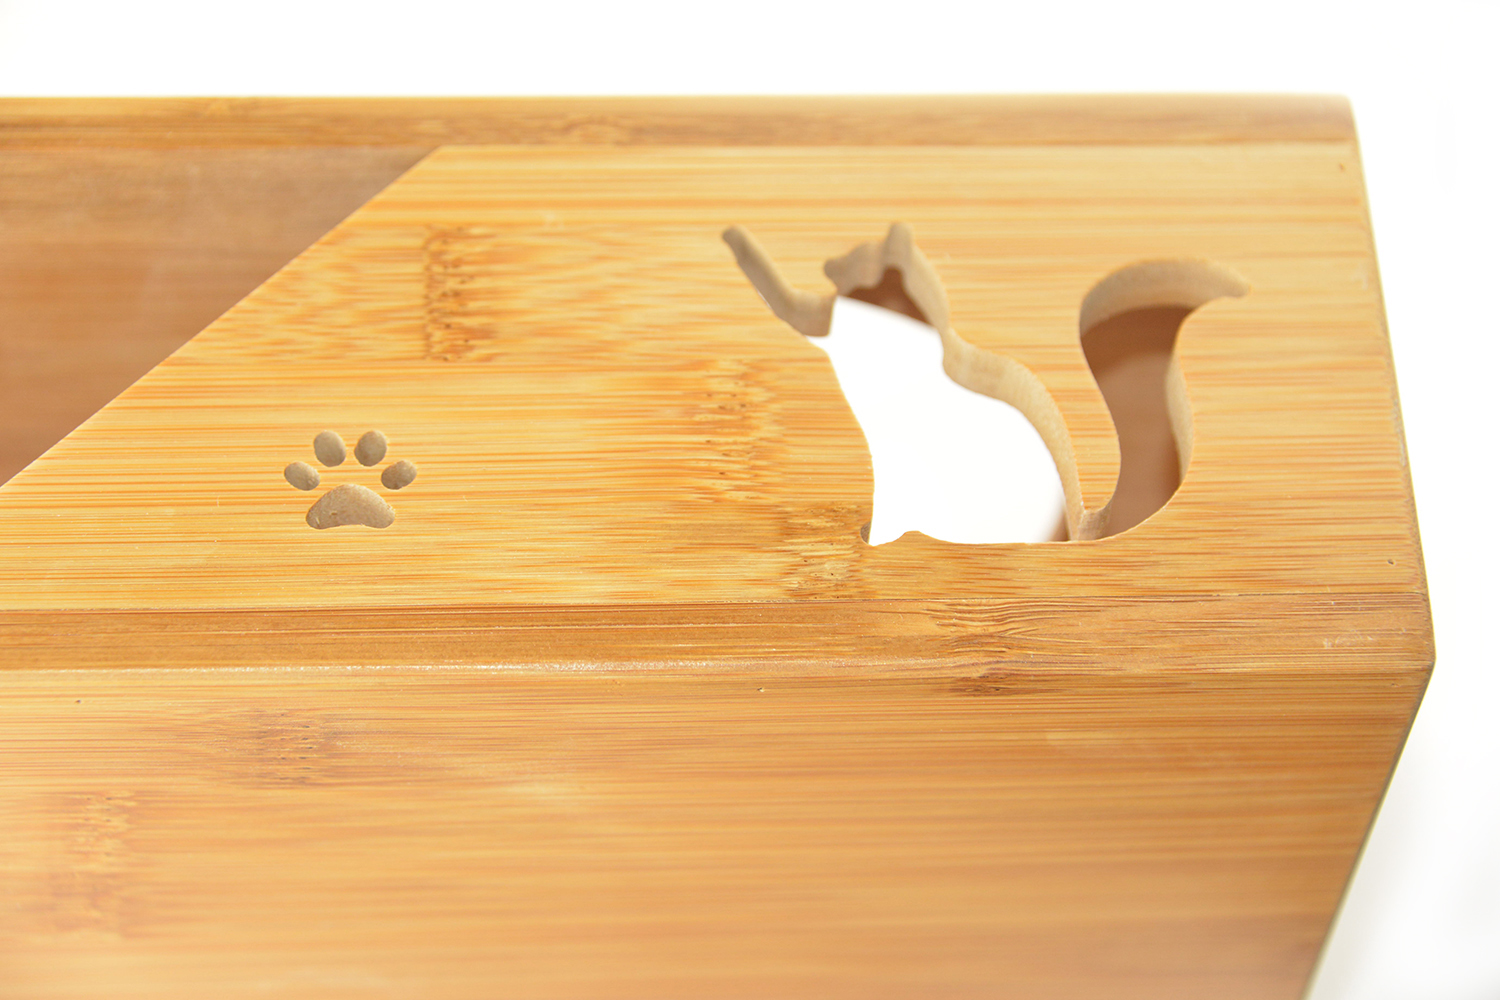 set removable table beautiful tilted elevated ceramic to your pin with mykonos feeder features cat angle this shallow bowls s an vivipet tabby